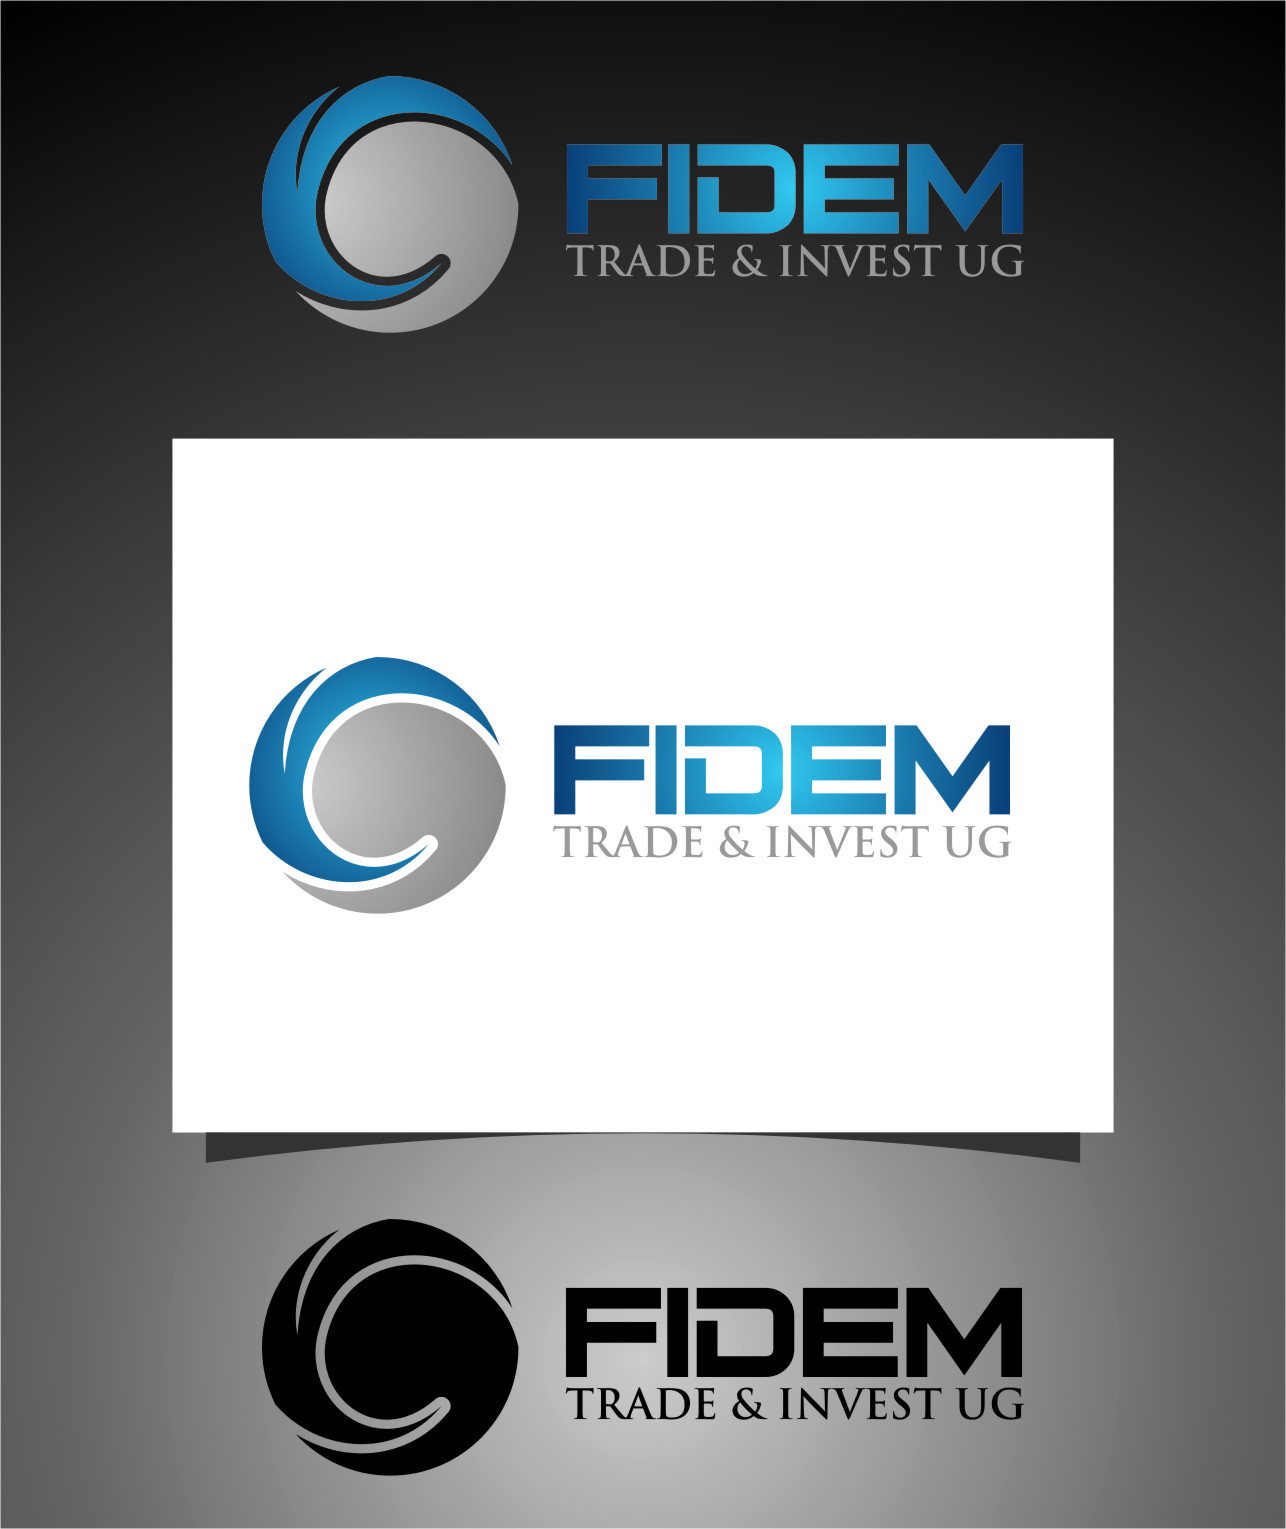 Logo Design by Ngepet_art - Entry No. 308 in the Logo Design Contest Professional Logo Design for FIDEM Trade & Invest UG.